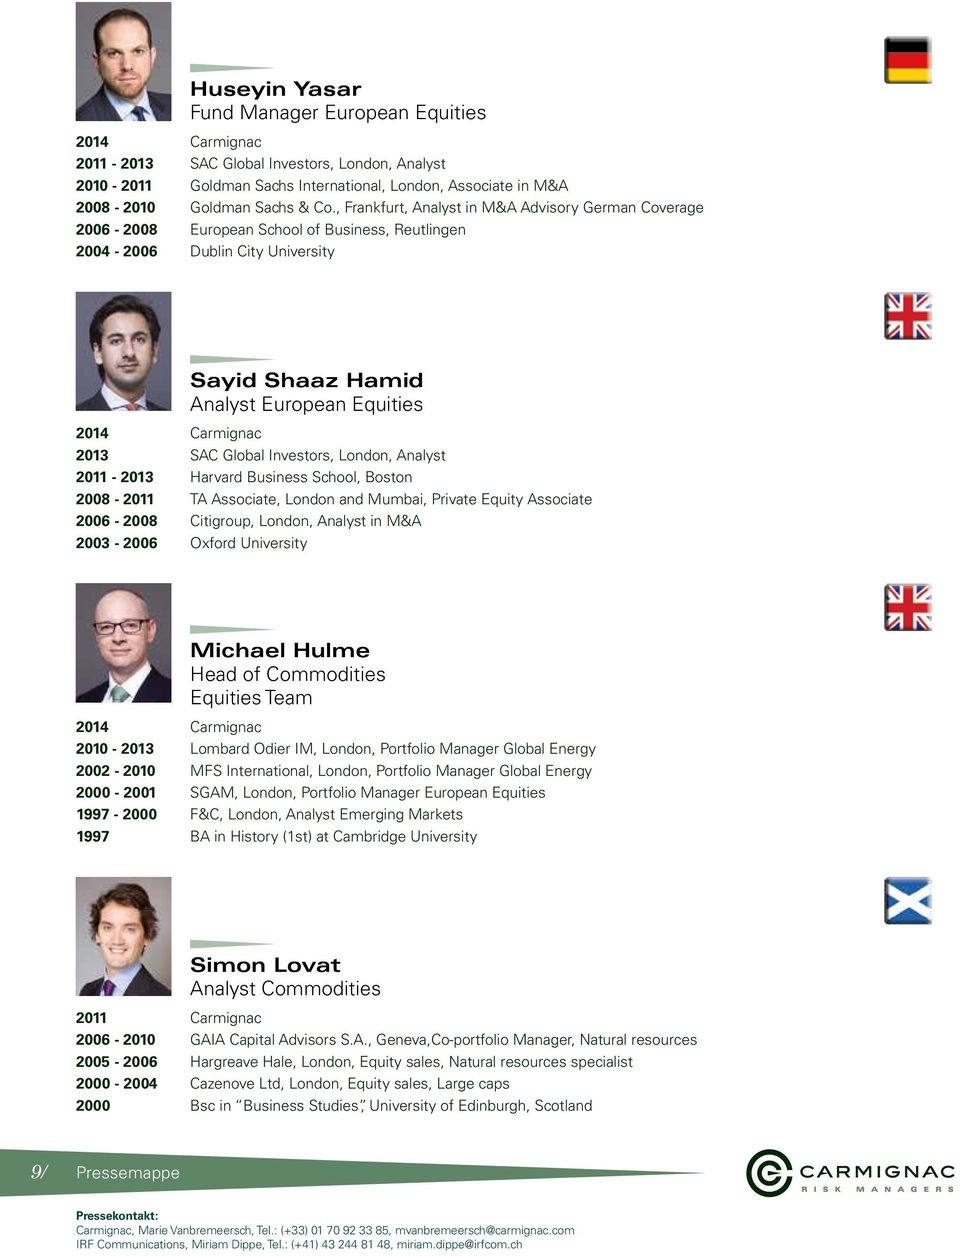 2013 SAC Global Investors, London, Analyst 2011-2013 Harvard Business School, Boston 2008-2011 TA Associate, London and Mumbai, Private Equity Associate 2006-2008 Citigroup, London, Analyst in M&A